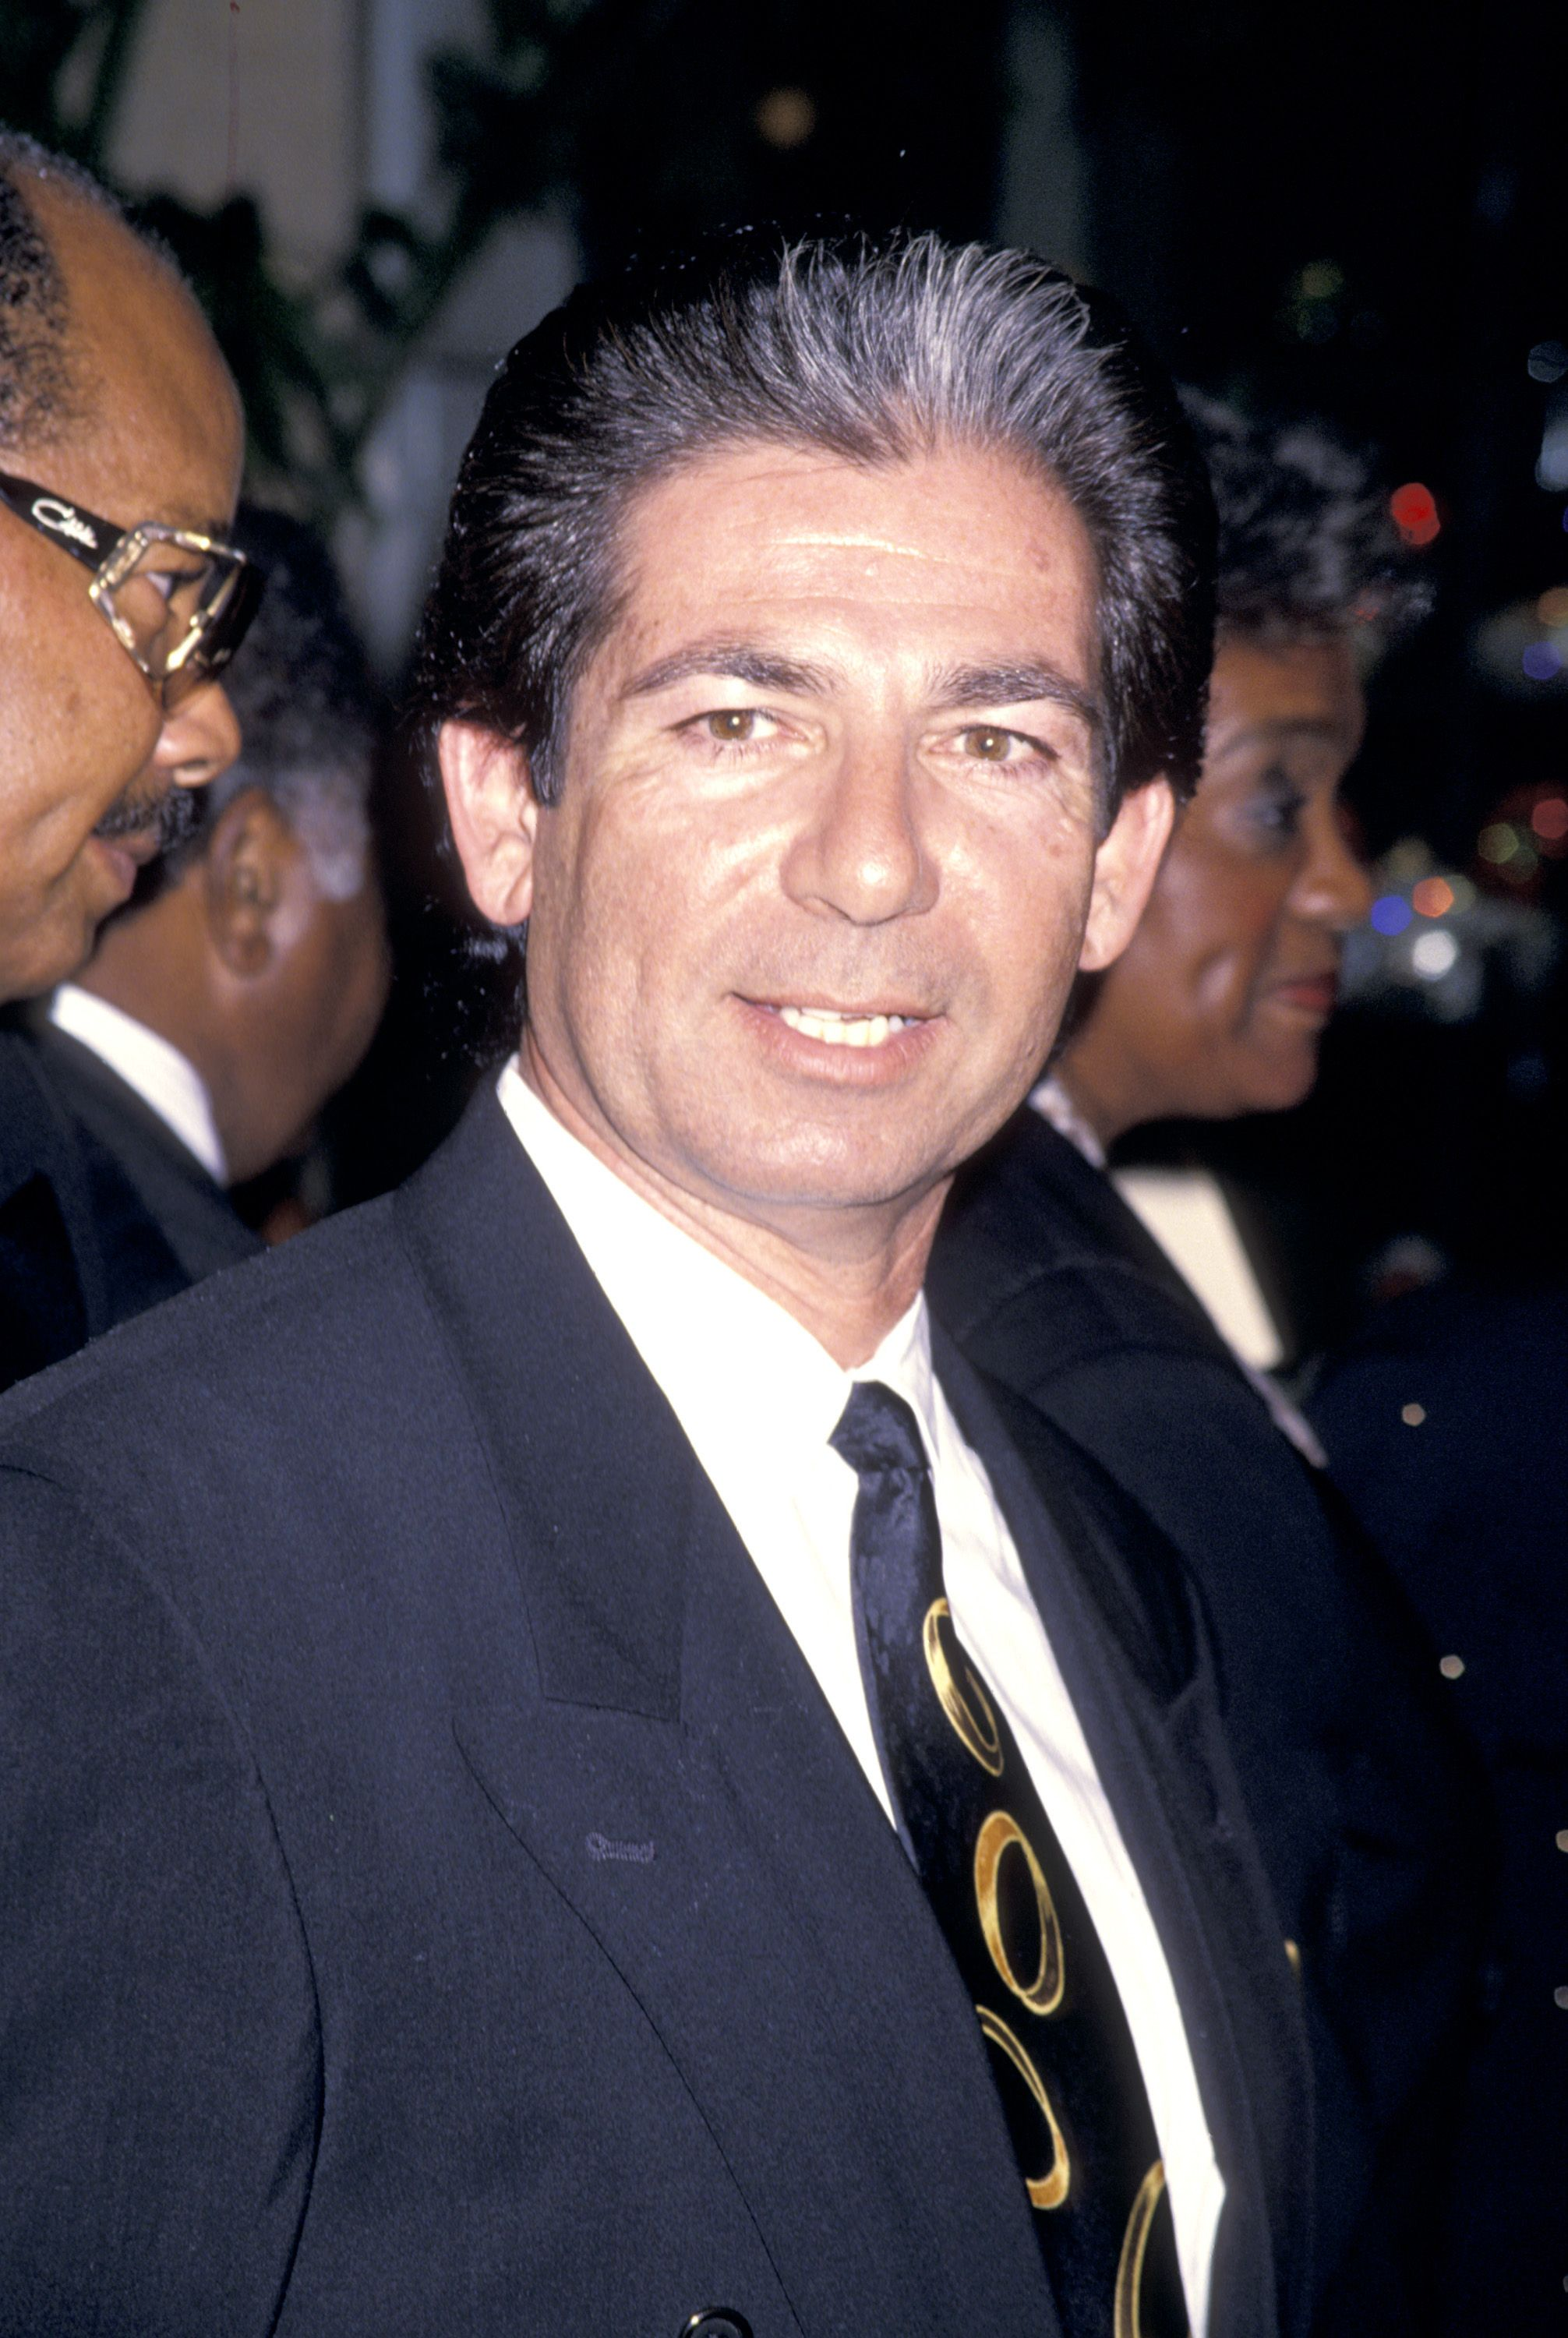 Robert Kardashian at the Brotherhood Crusade Gala Dinner circa 2001 | Source: Getty Images